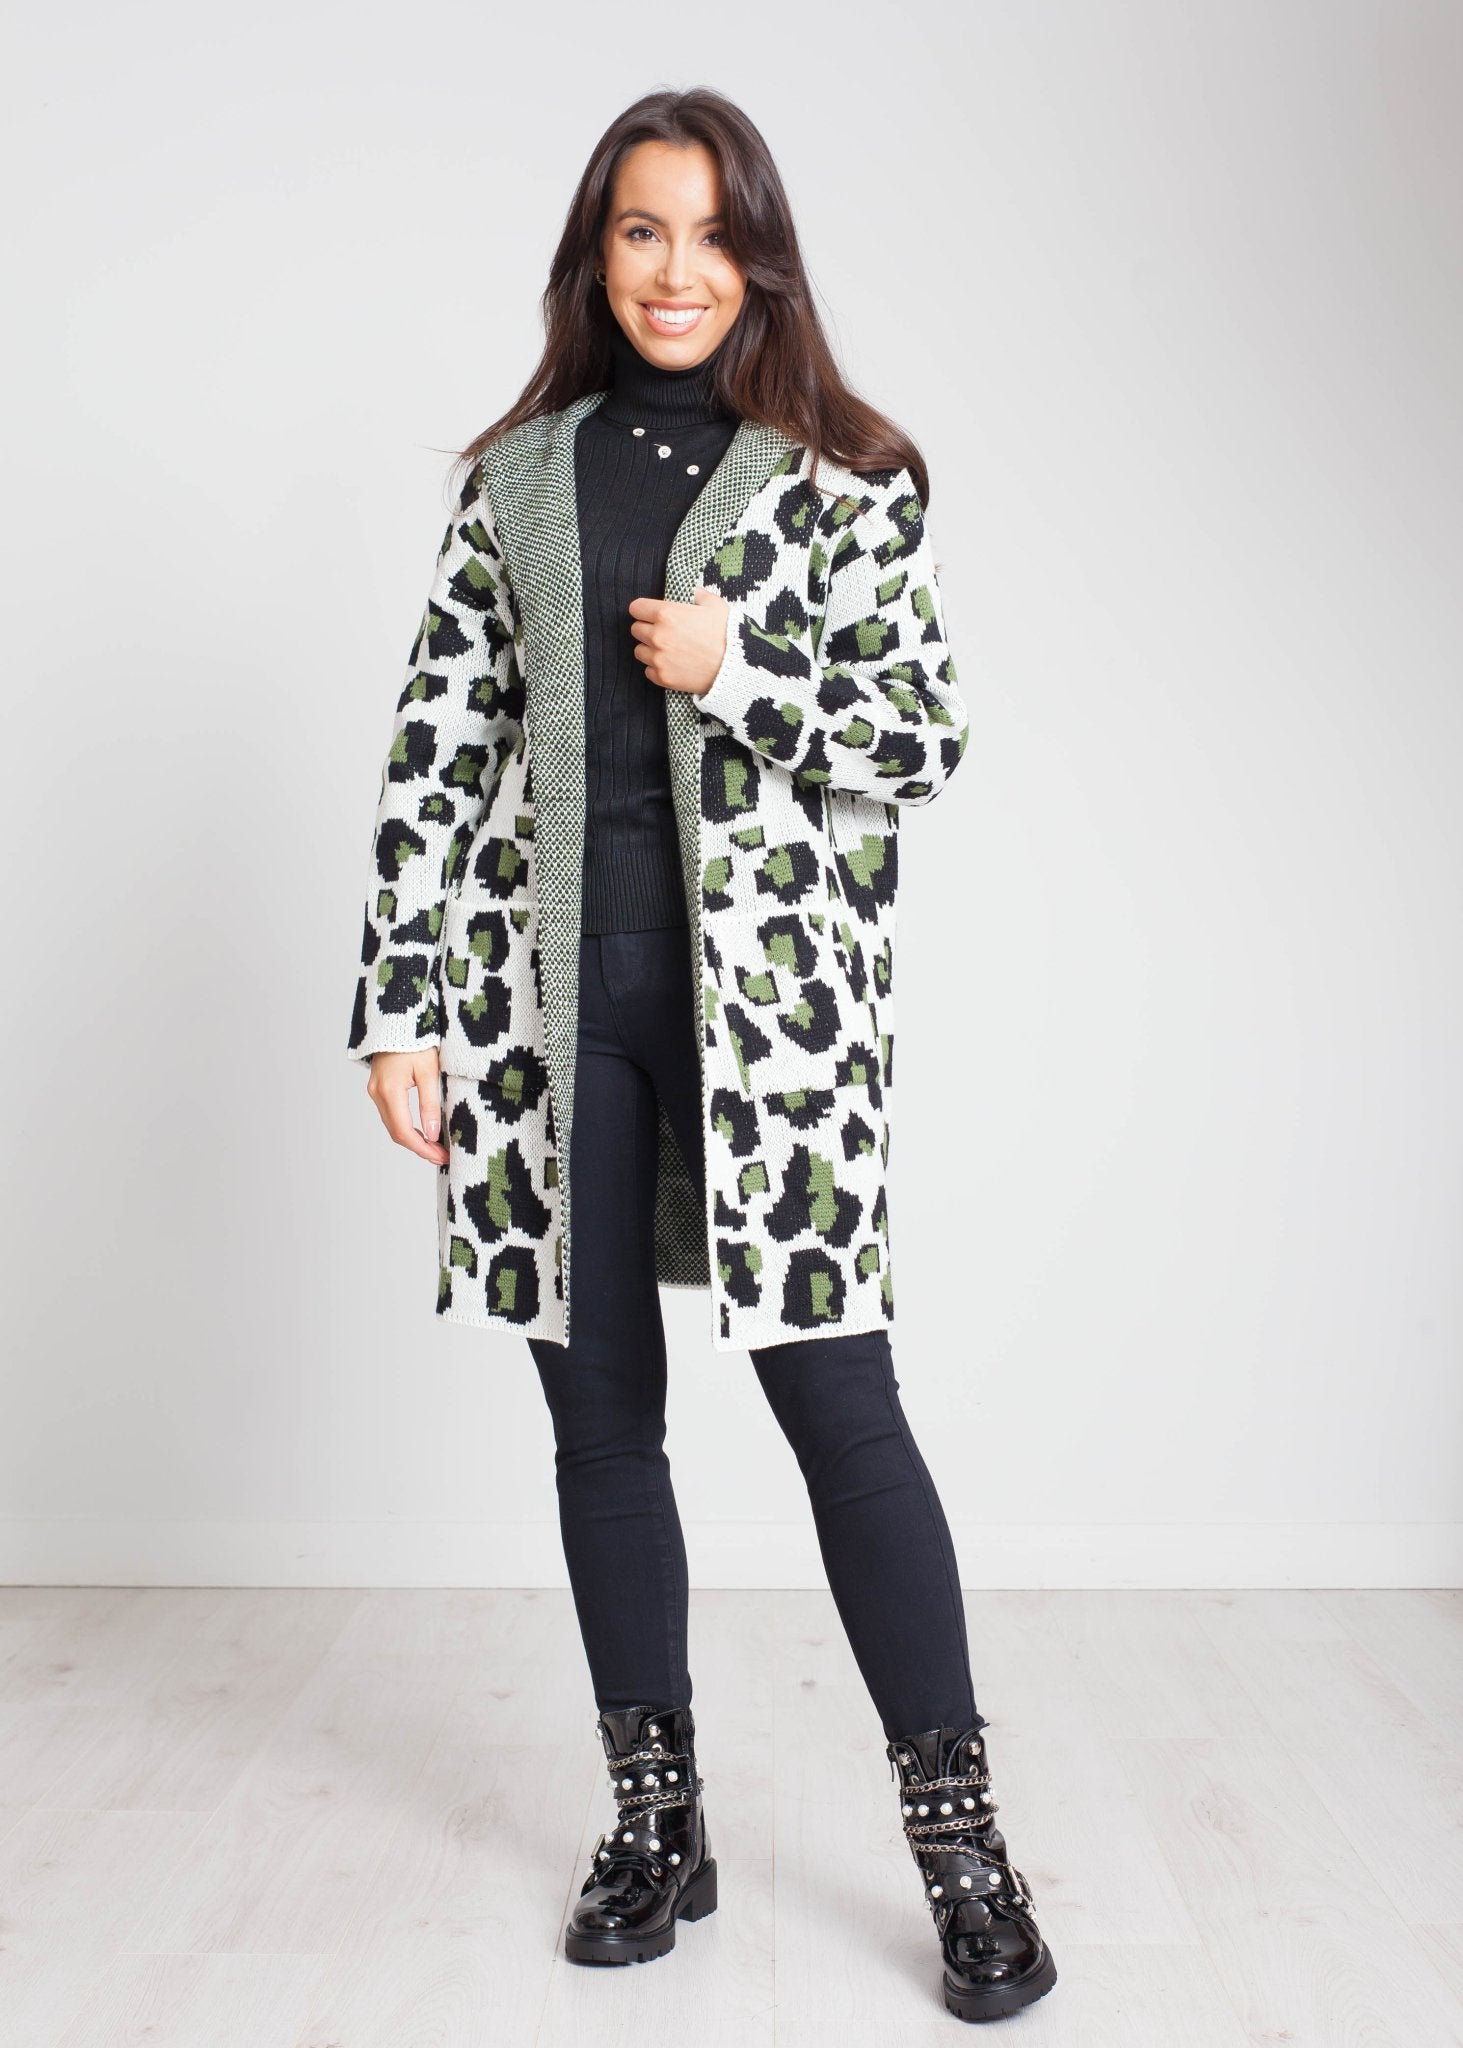 Sarah Hooded Cardigan In Khaki Mix - The Walk in Wardrobe